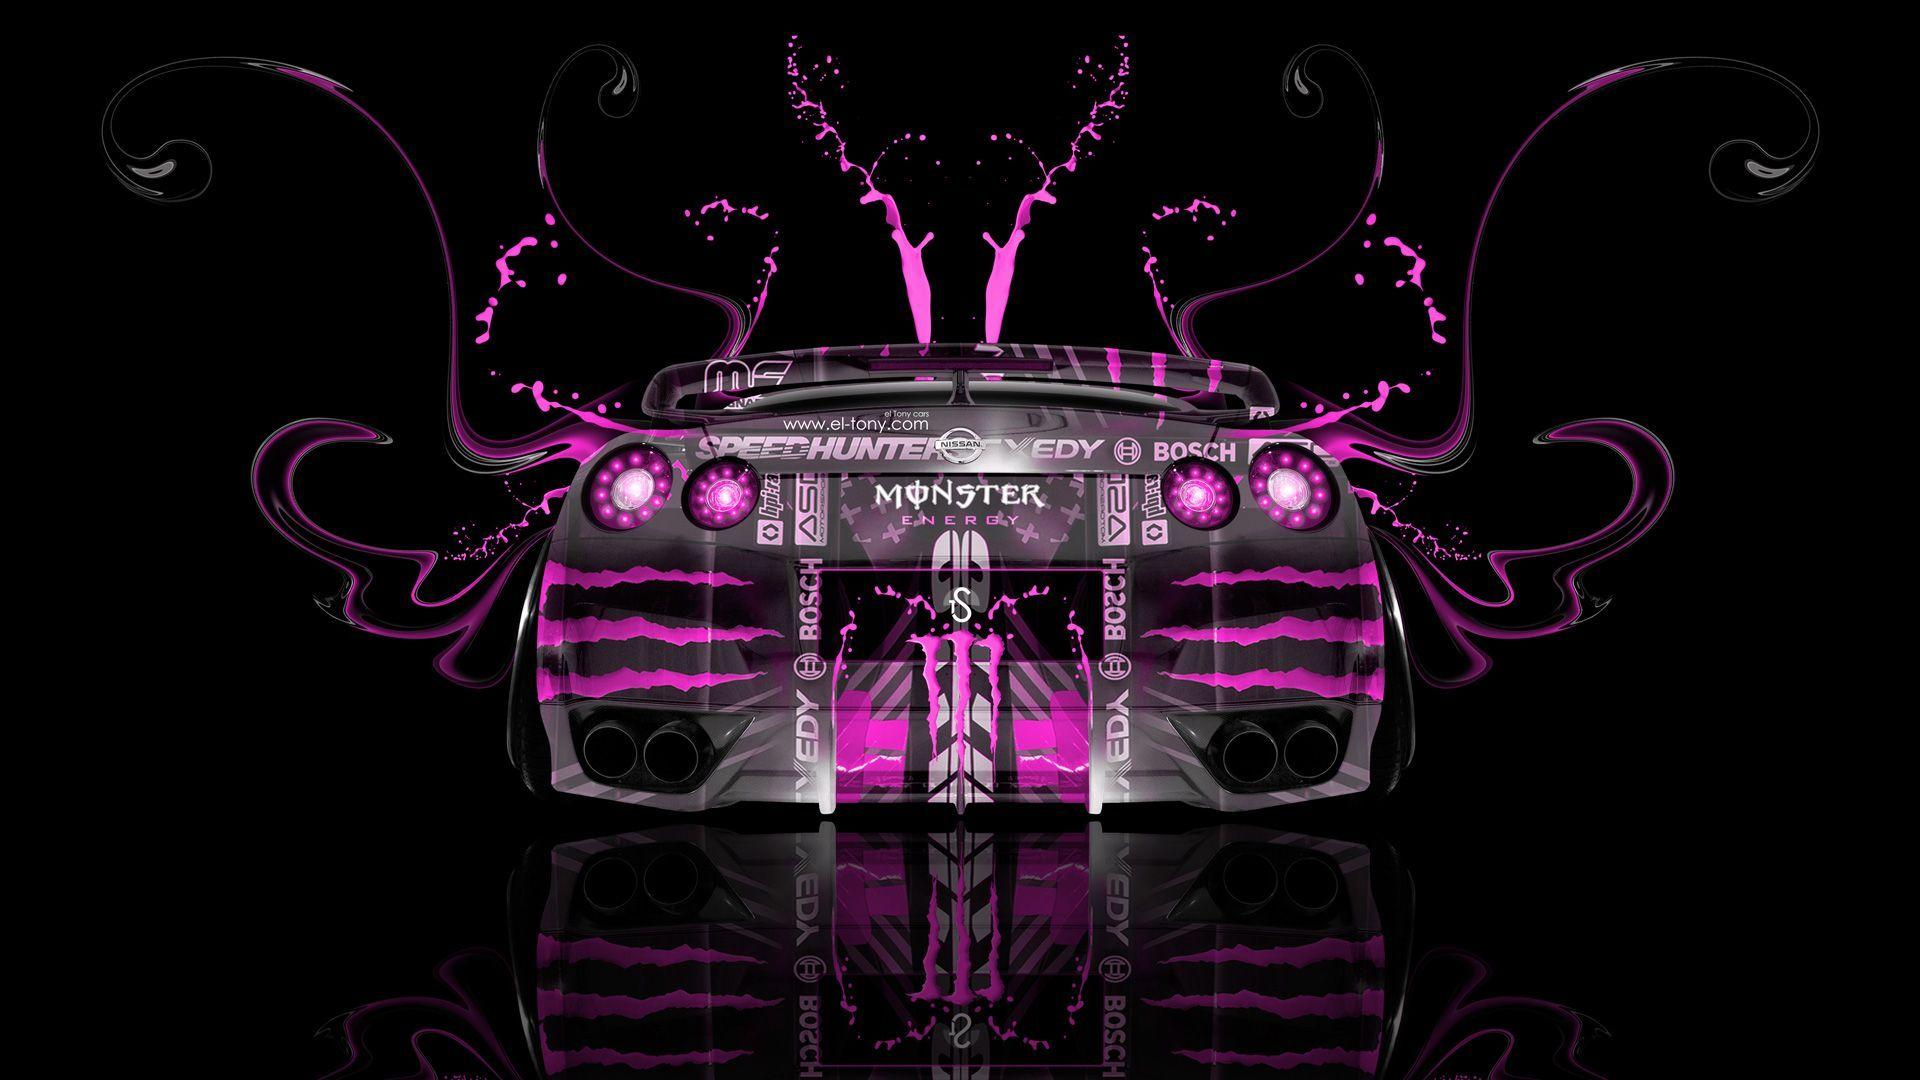 Brands Wallpaper: Pink Monster Energy Image Wallpapers For HD